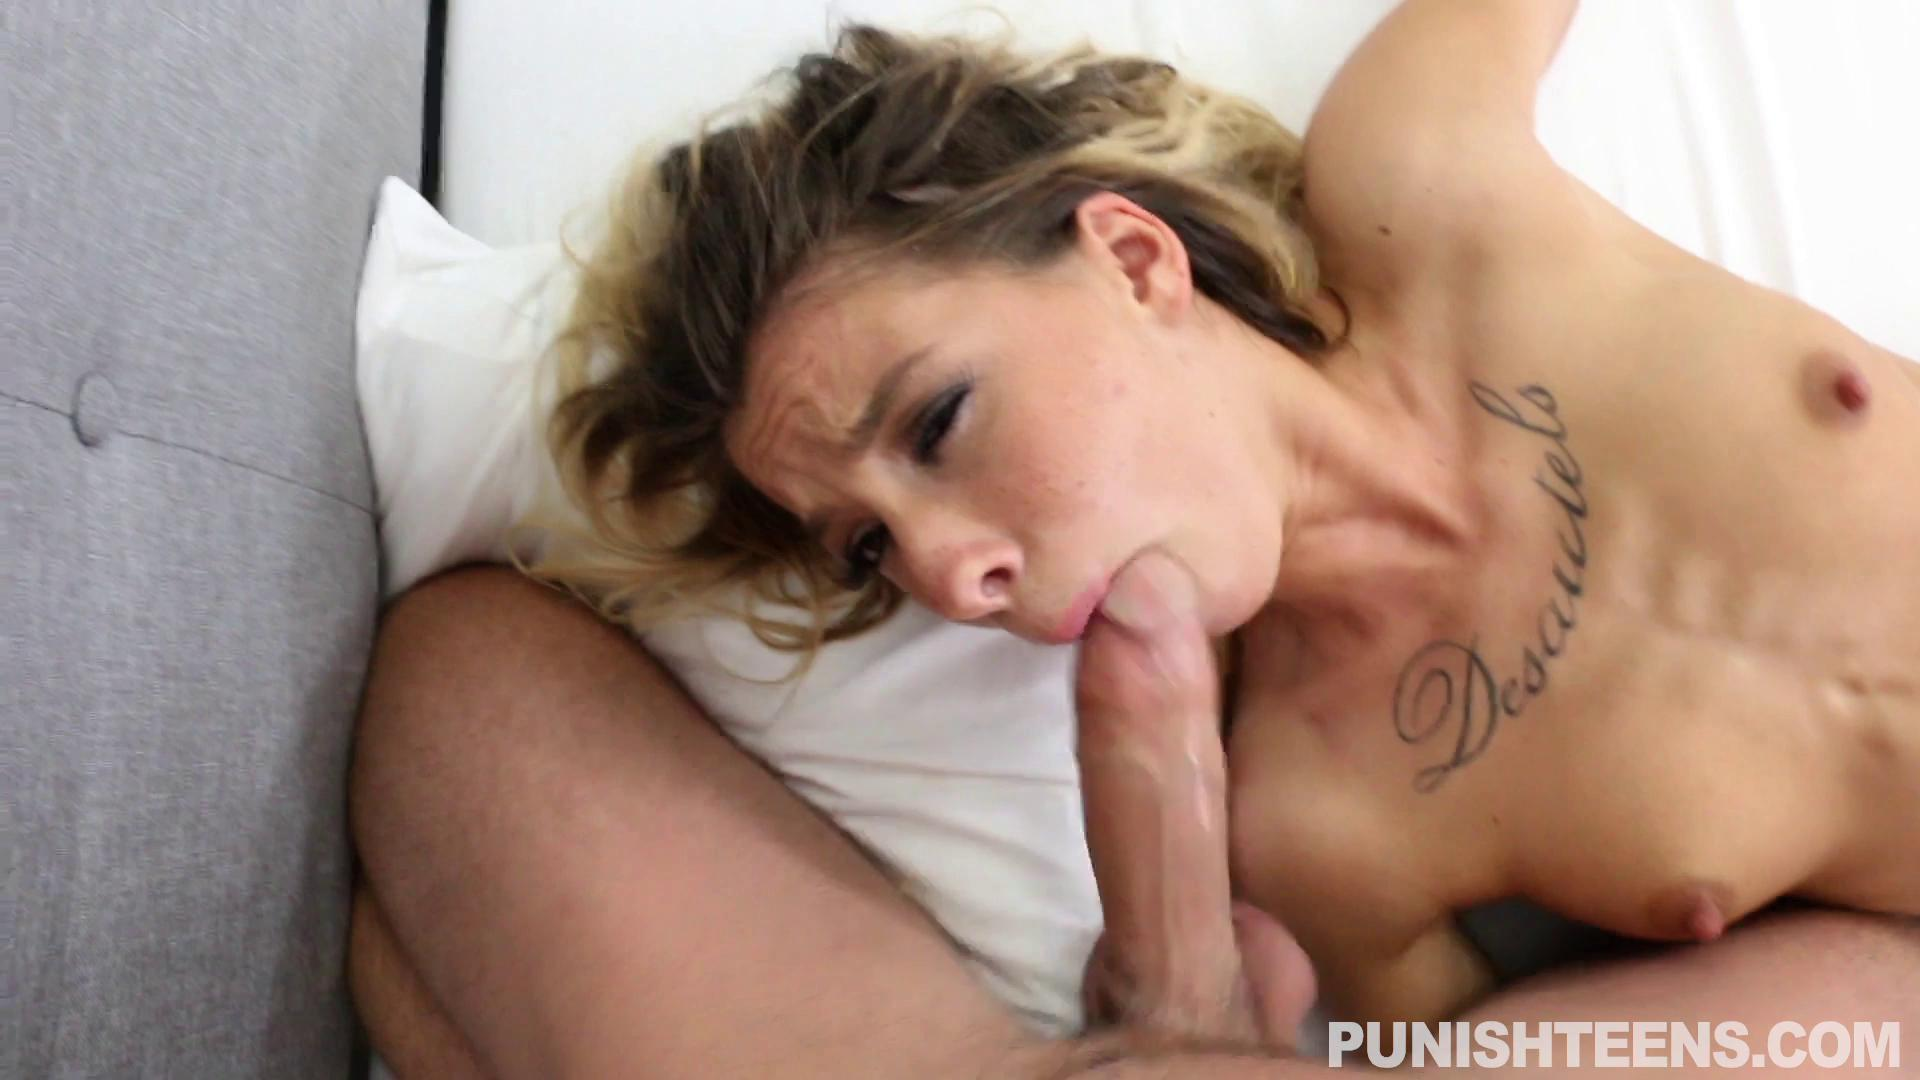 PunishTeens – Kenzie Reeves